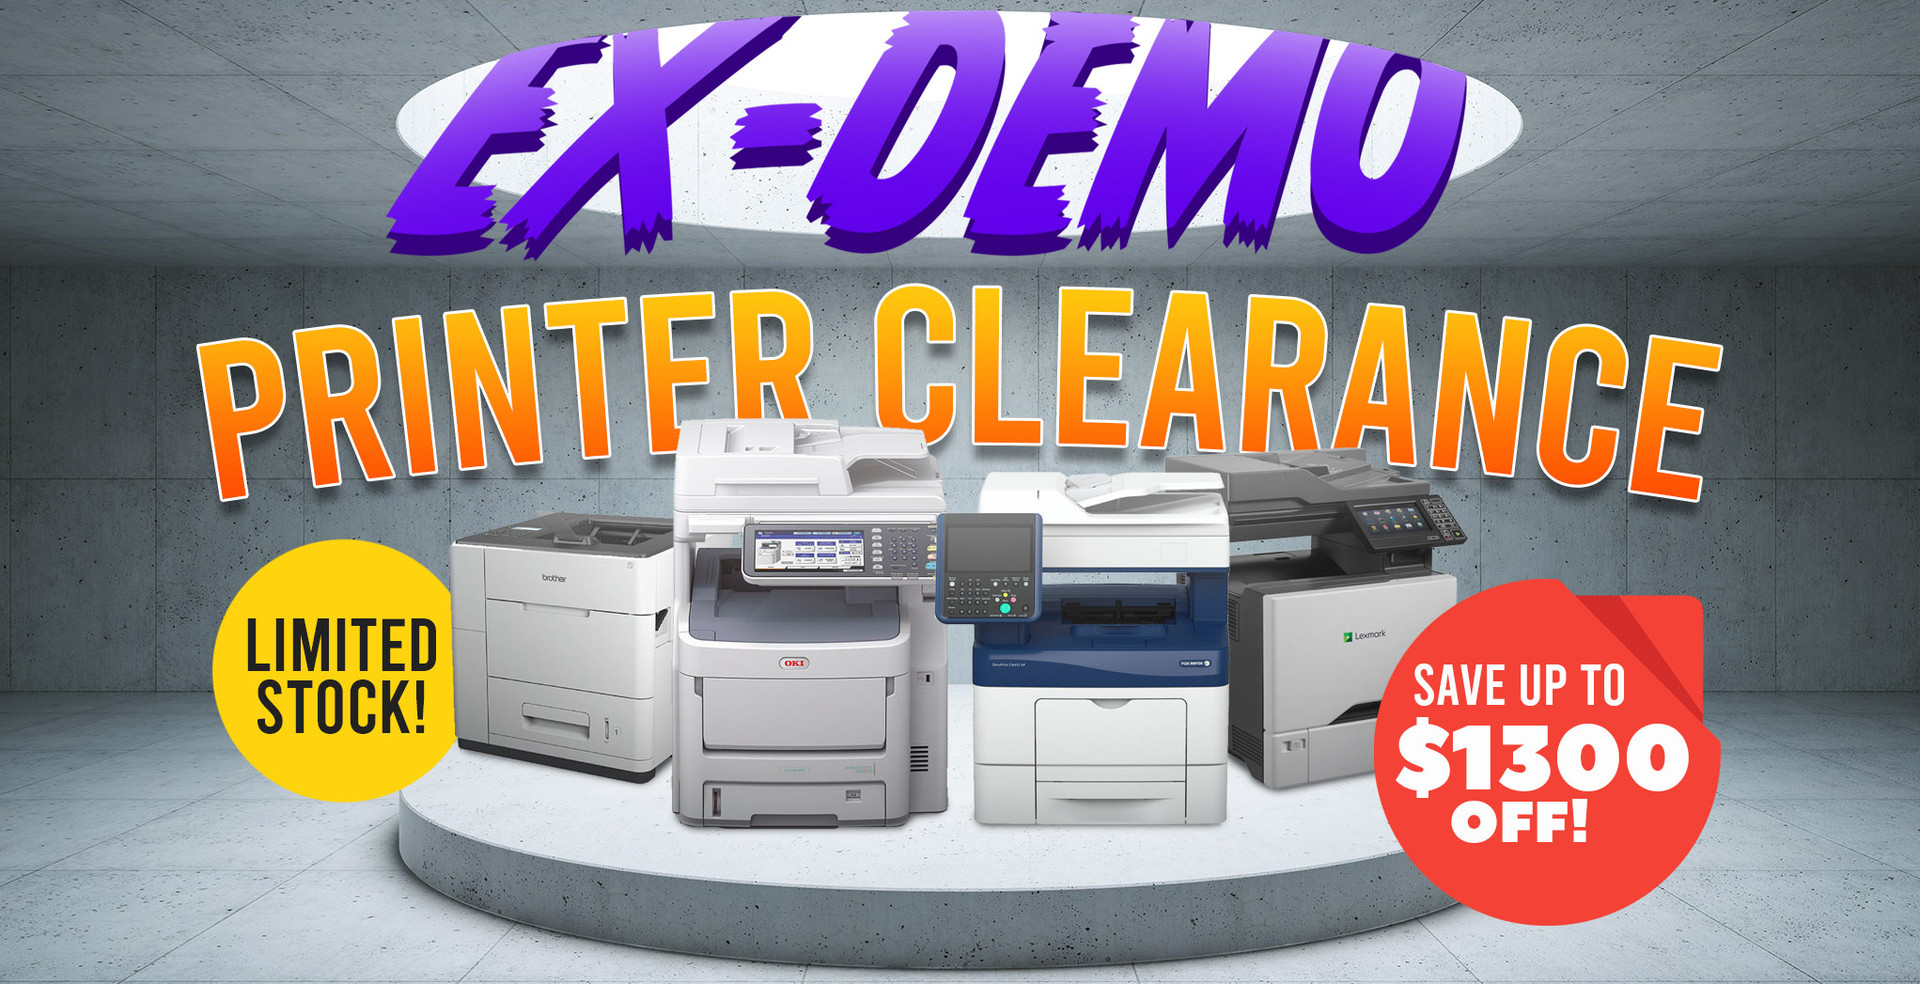 Ex-Demo Printer Clearance: Save up to $1300 off!